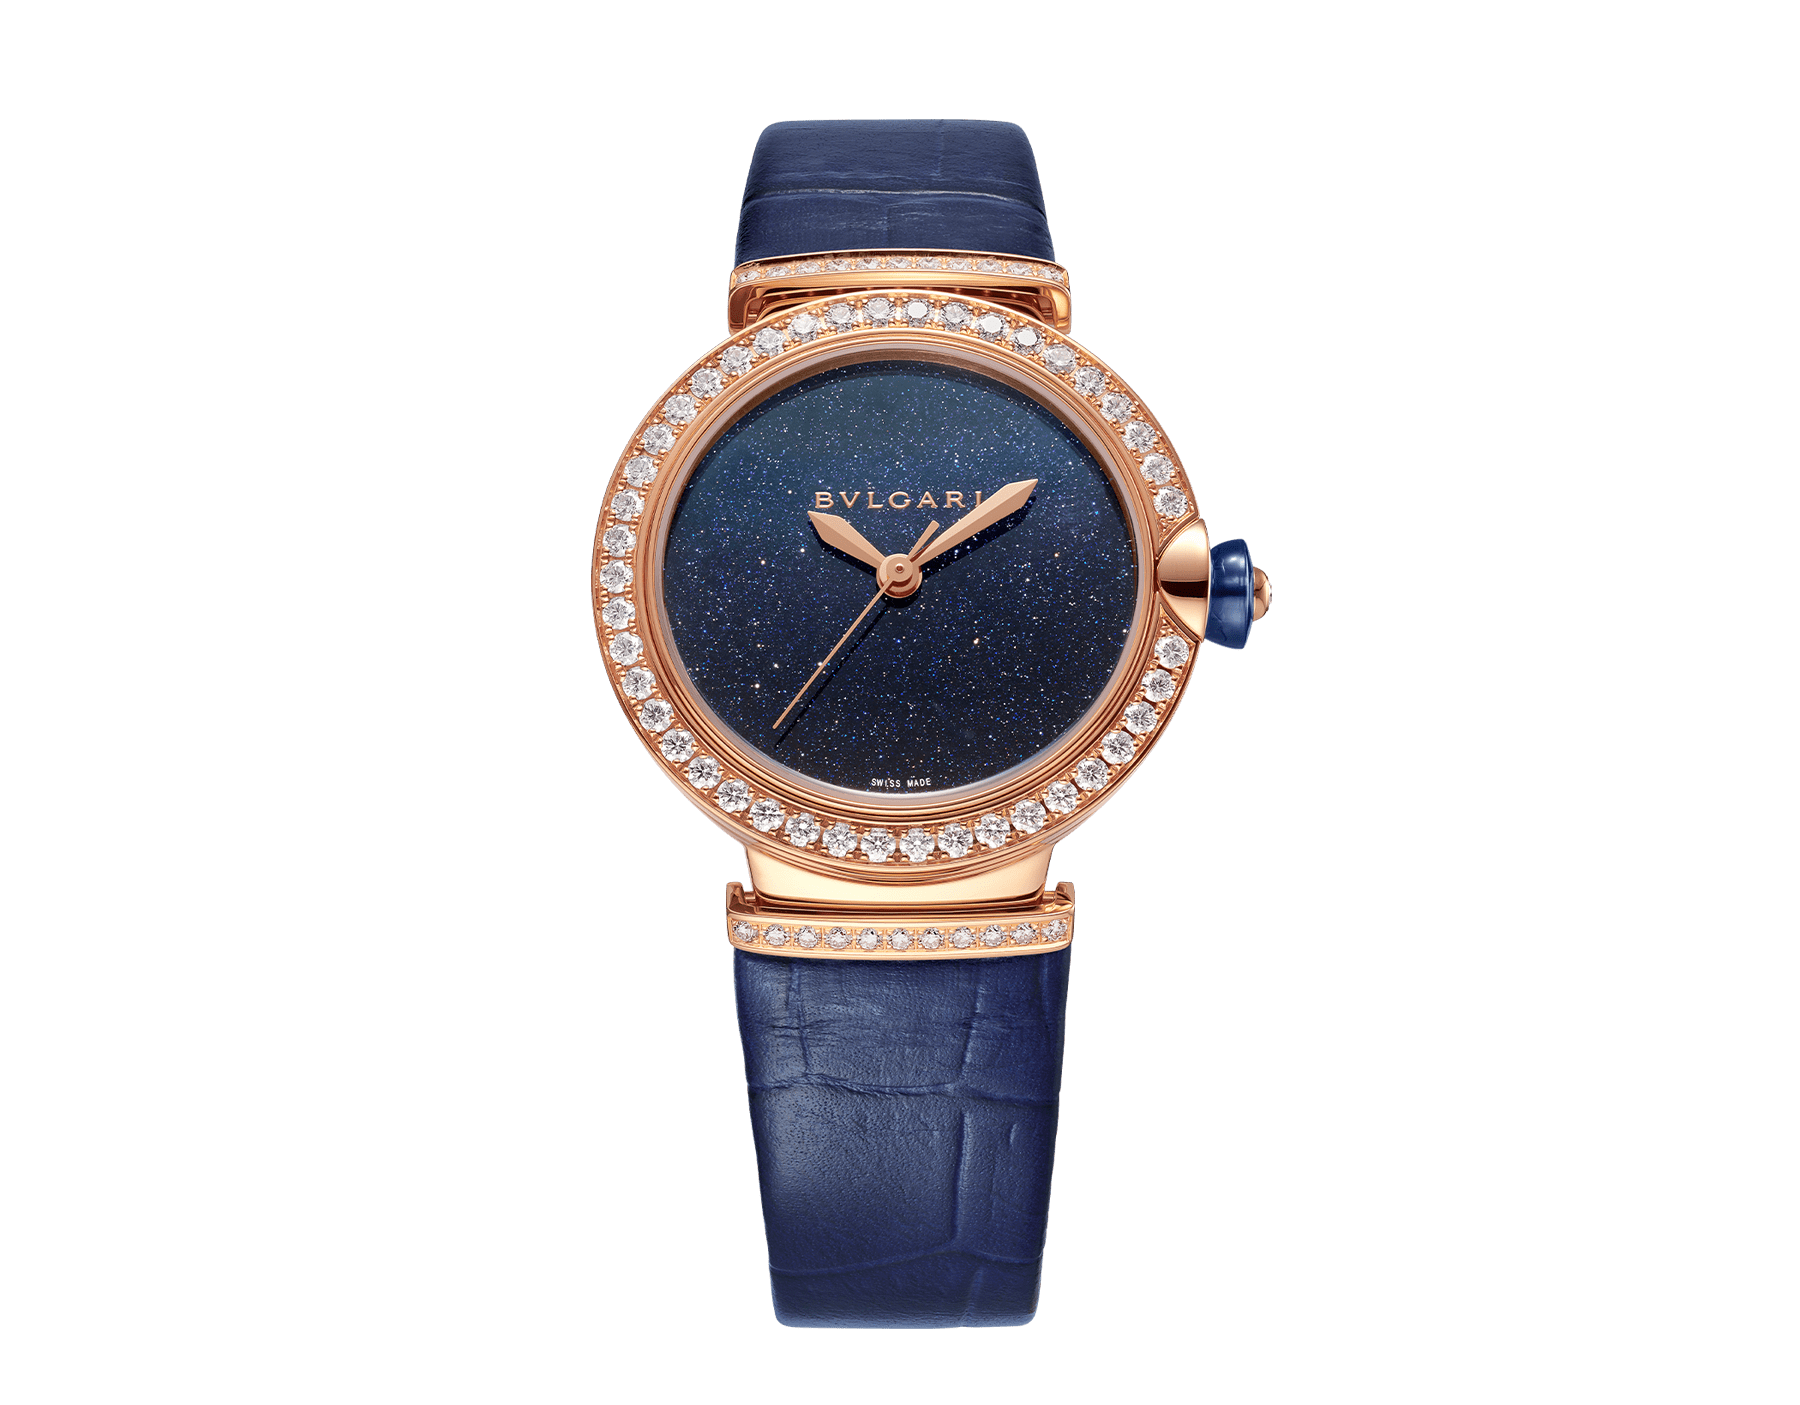 LVCEA watch with mechanical movement and automatic winding, polished 18 kt rose gold case and links both set with round brilliant-cut diamonds, blue aventurine dial and blue alligator bracelet. Water-resistant up to 30 metres. 103341 image 1